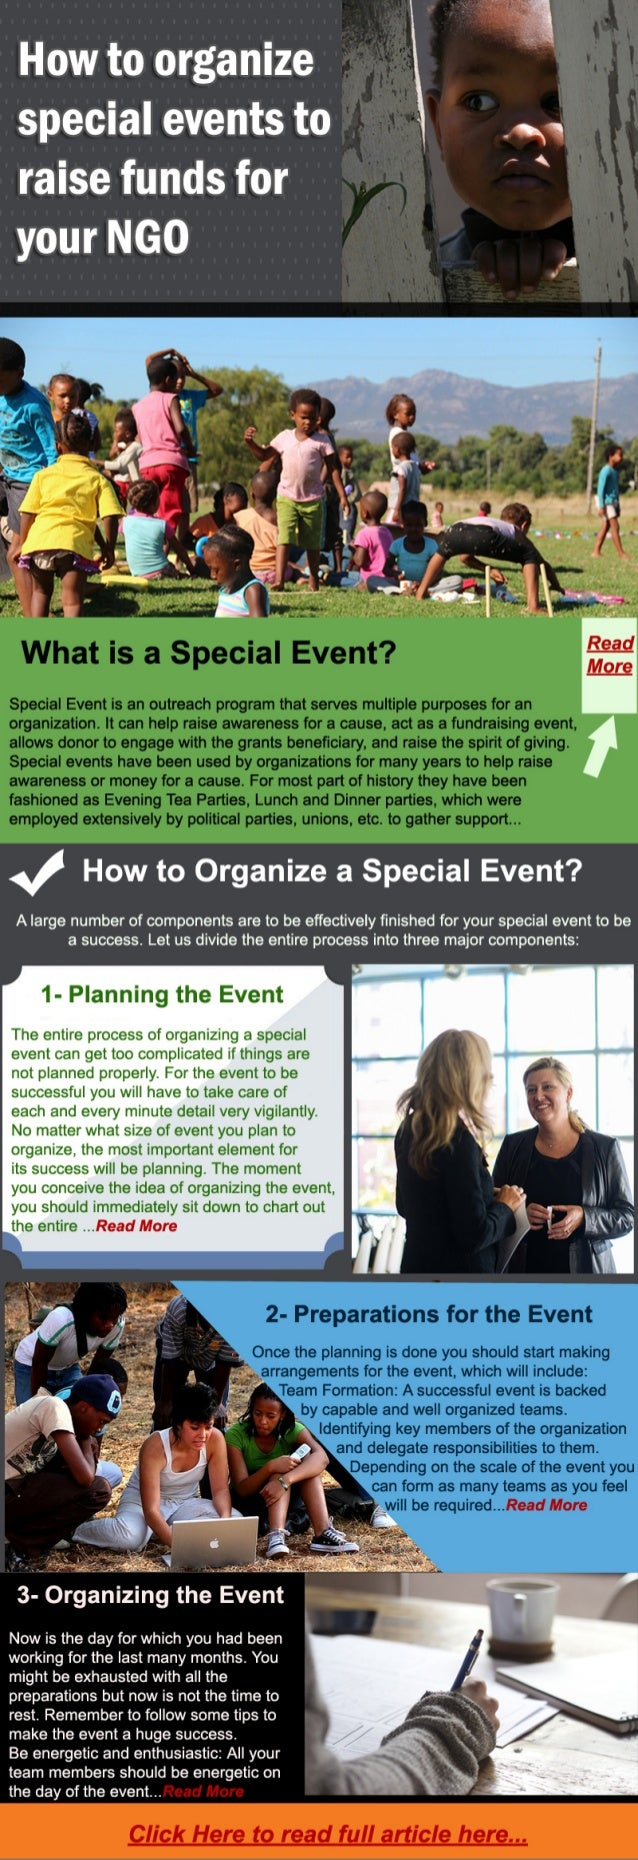 How to organize special events to raise funds for your NGO